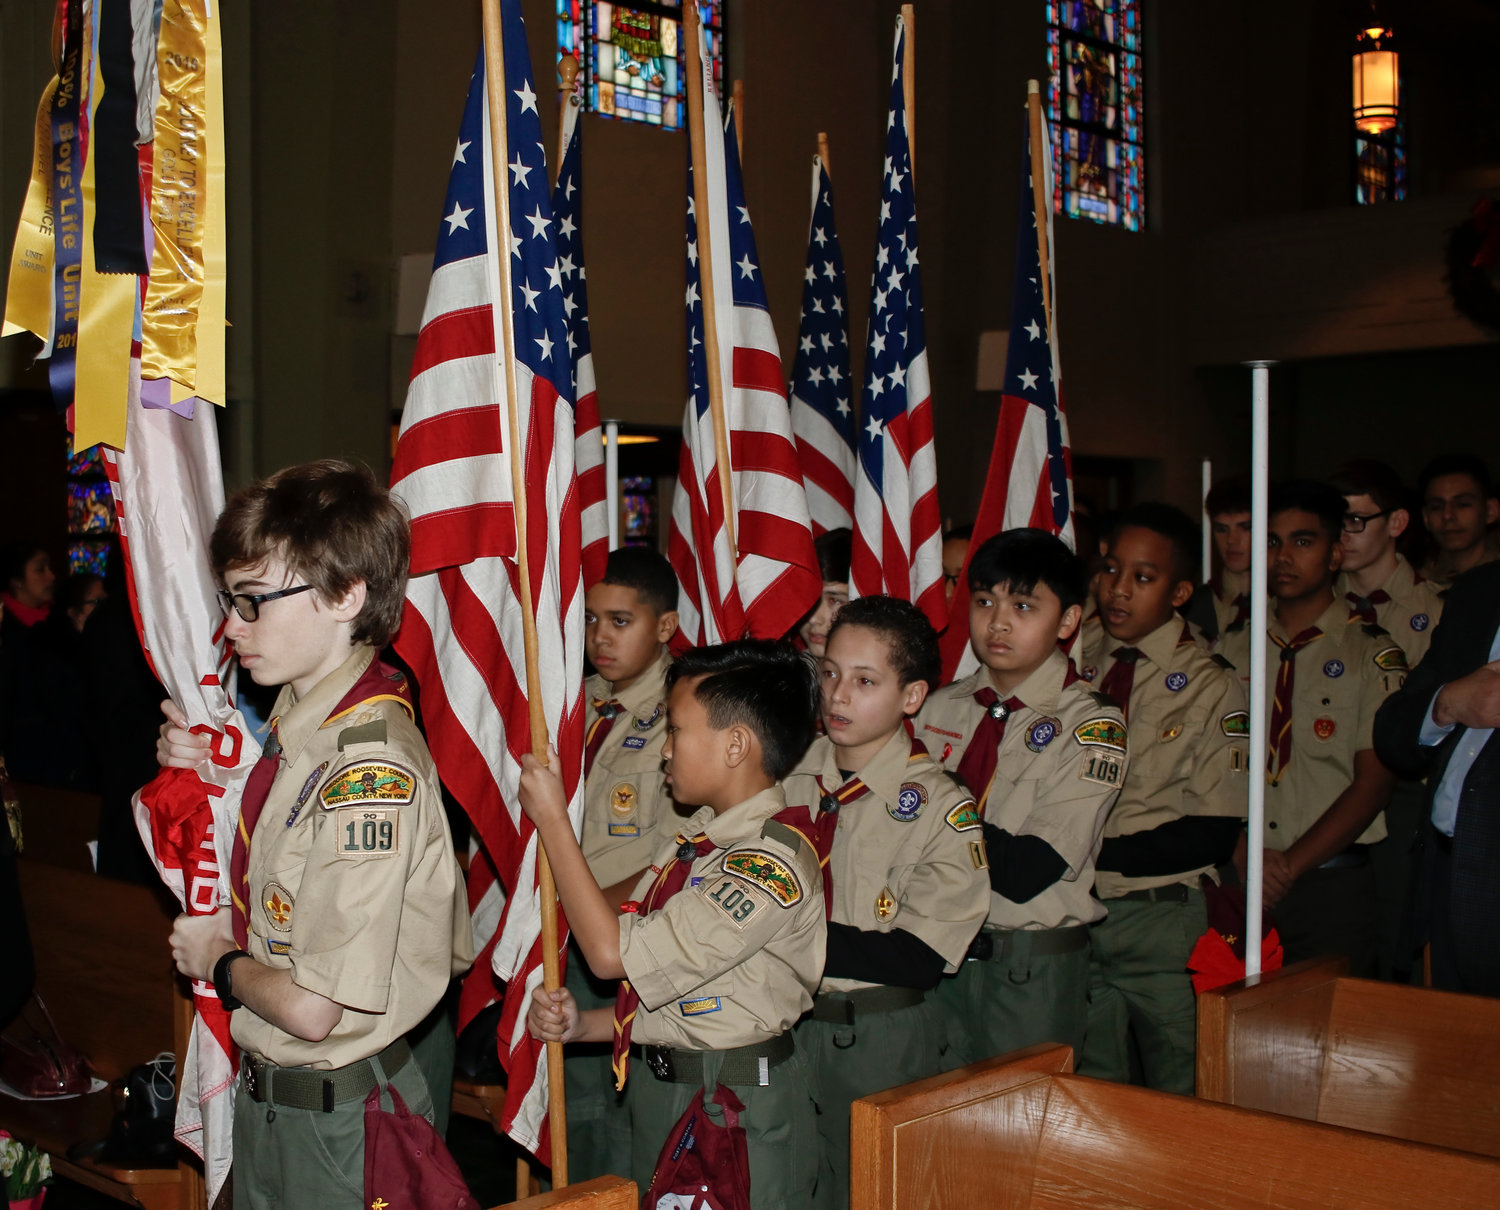 To start the ceremony, the color guard and Troop 109 scouts brought the flags forward and recited the Pledge of Allegiance.